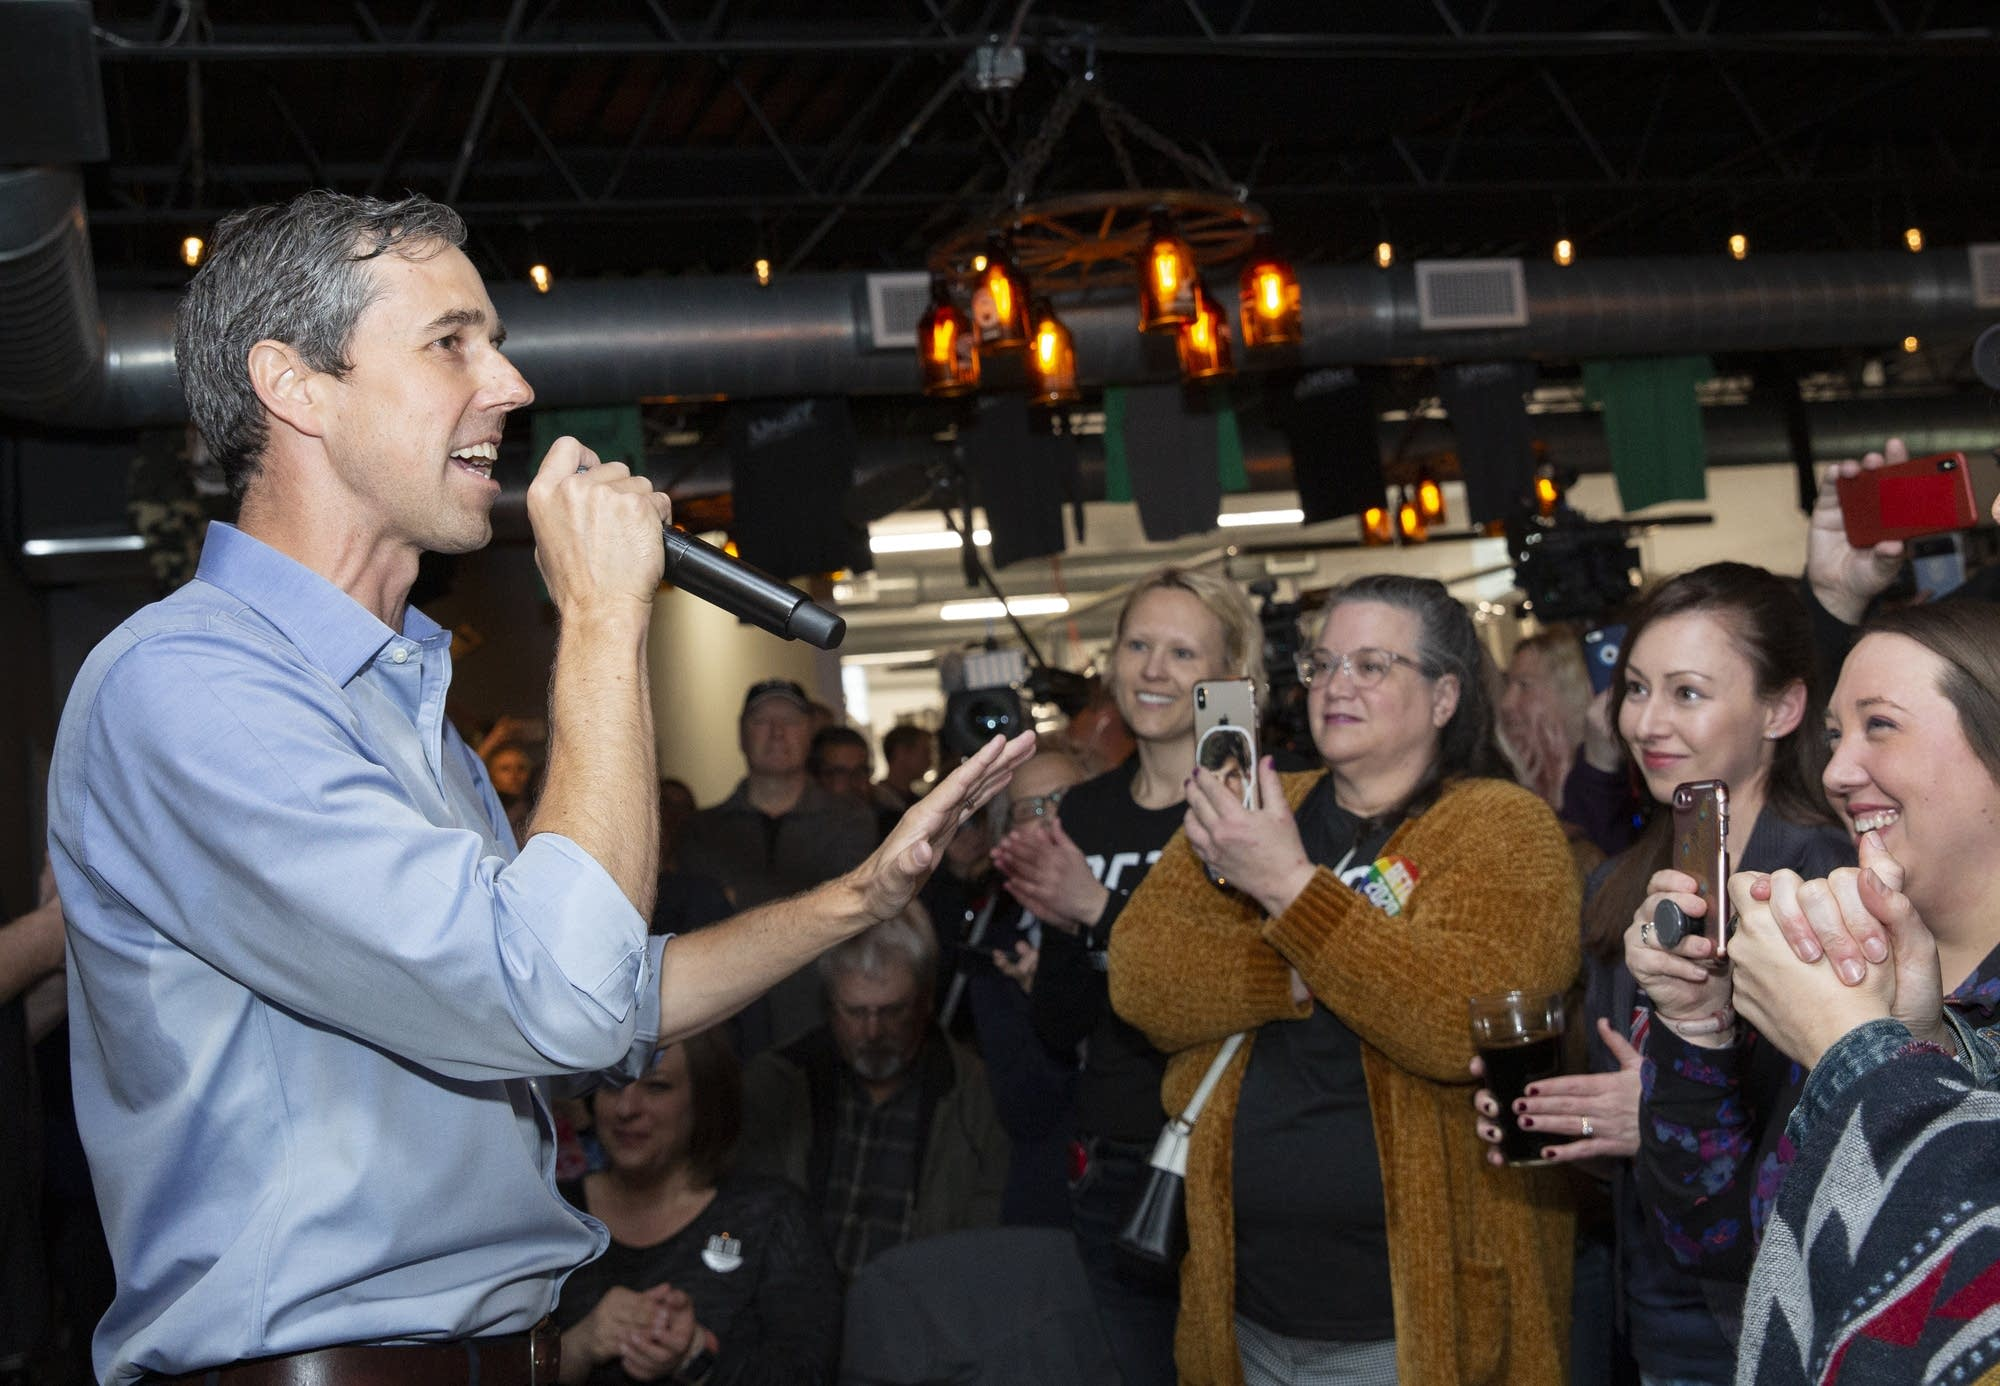 Democratic presidential candidate Beto O'Rourke speaks to a crowd.